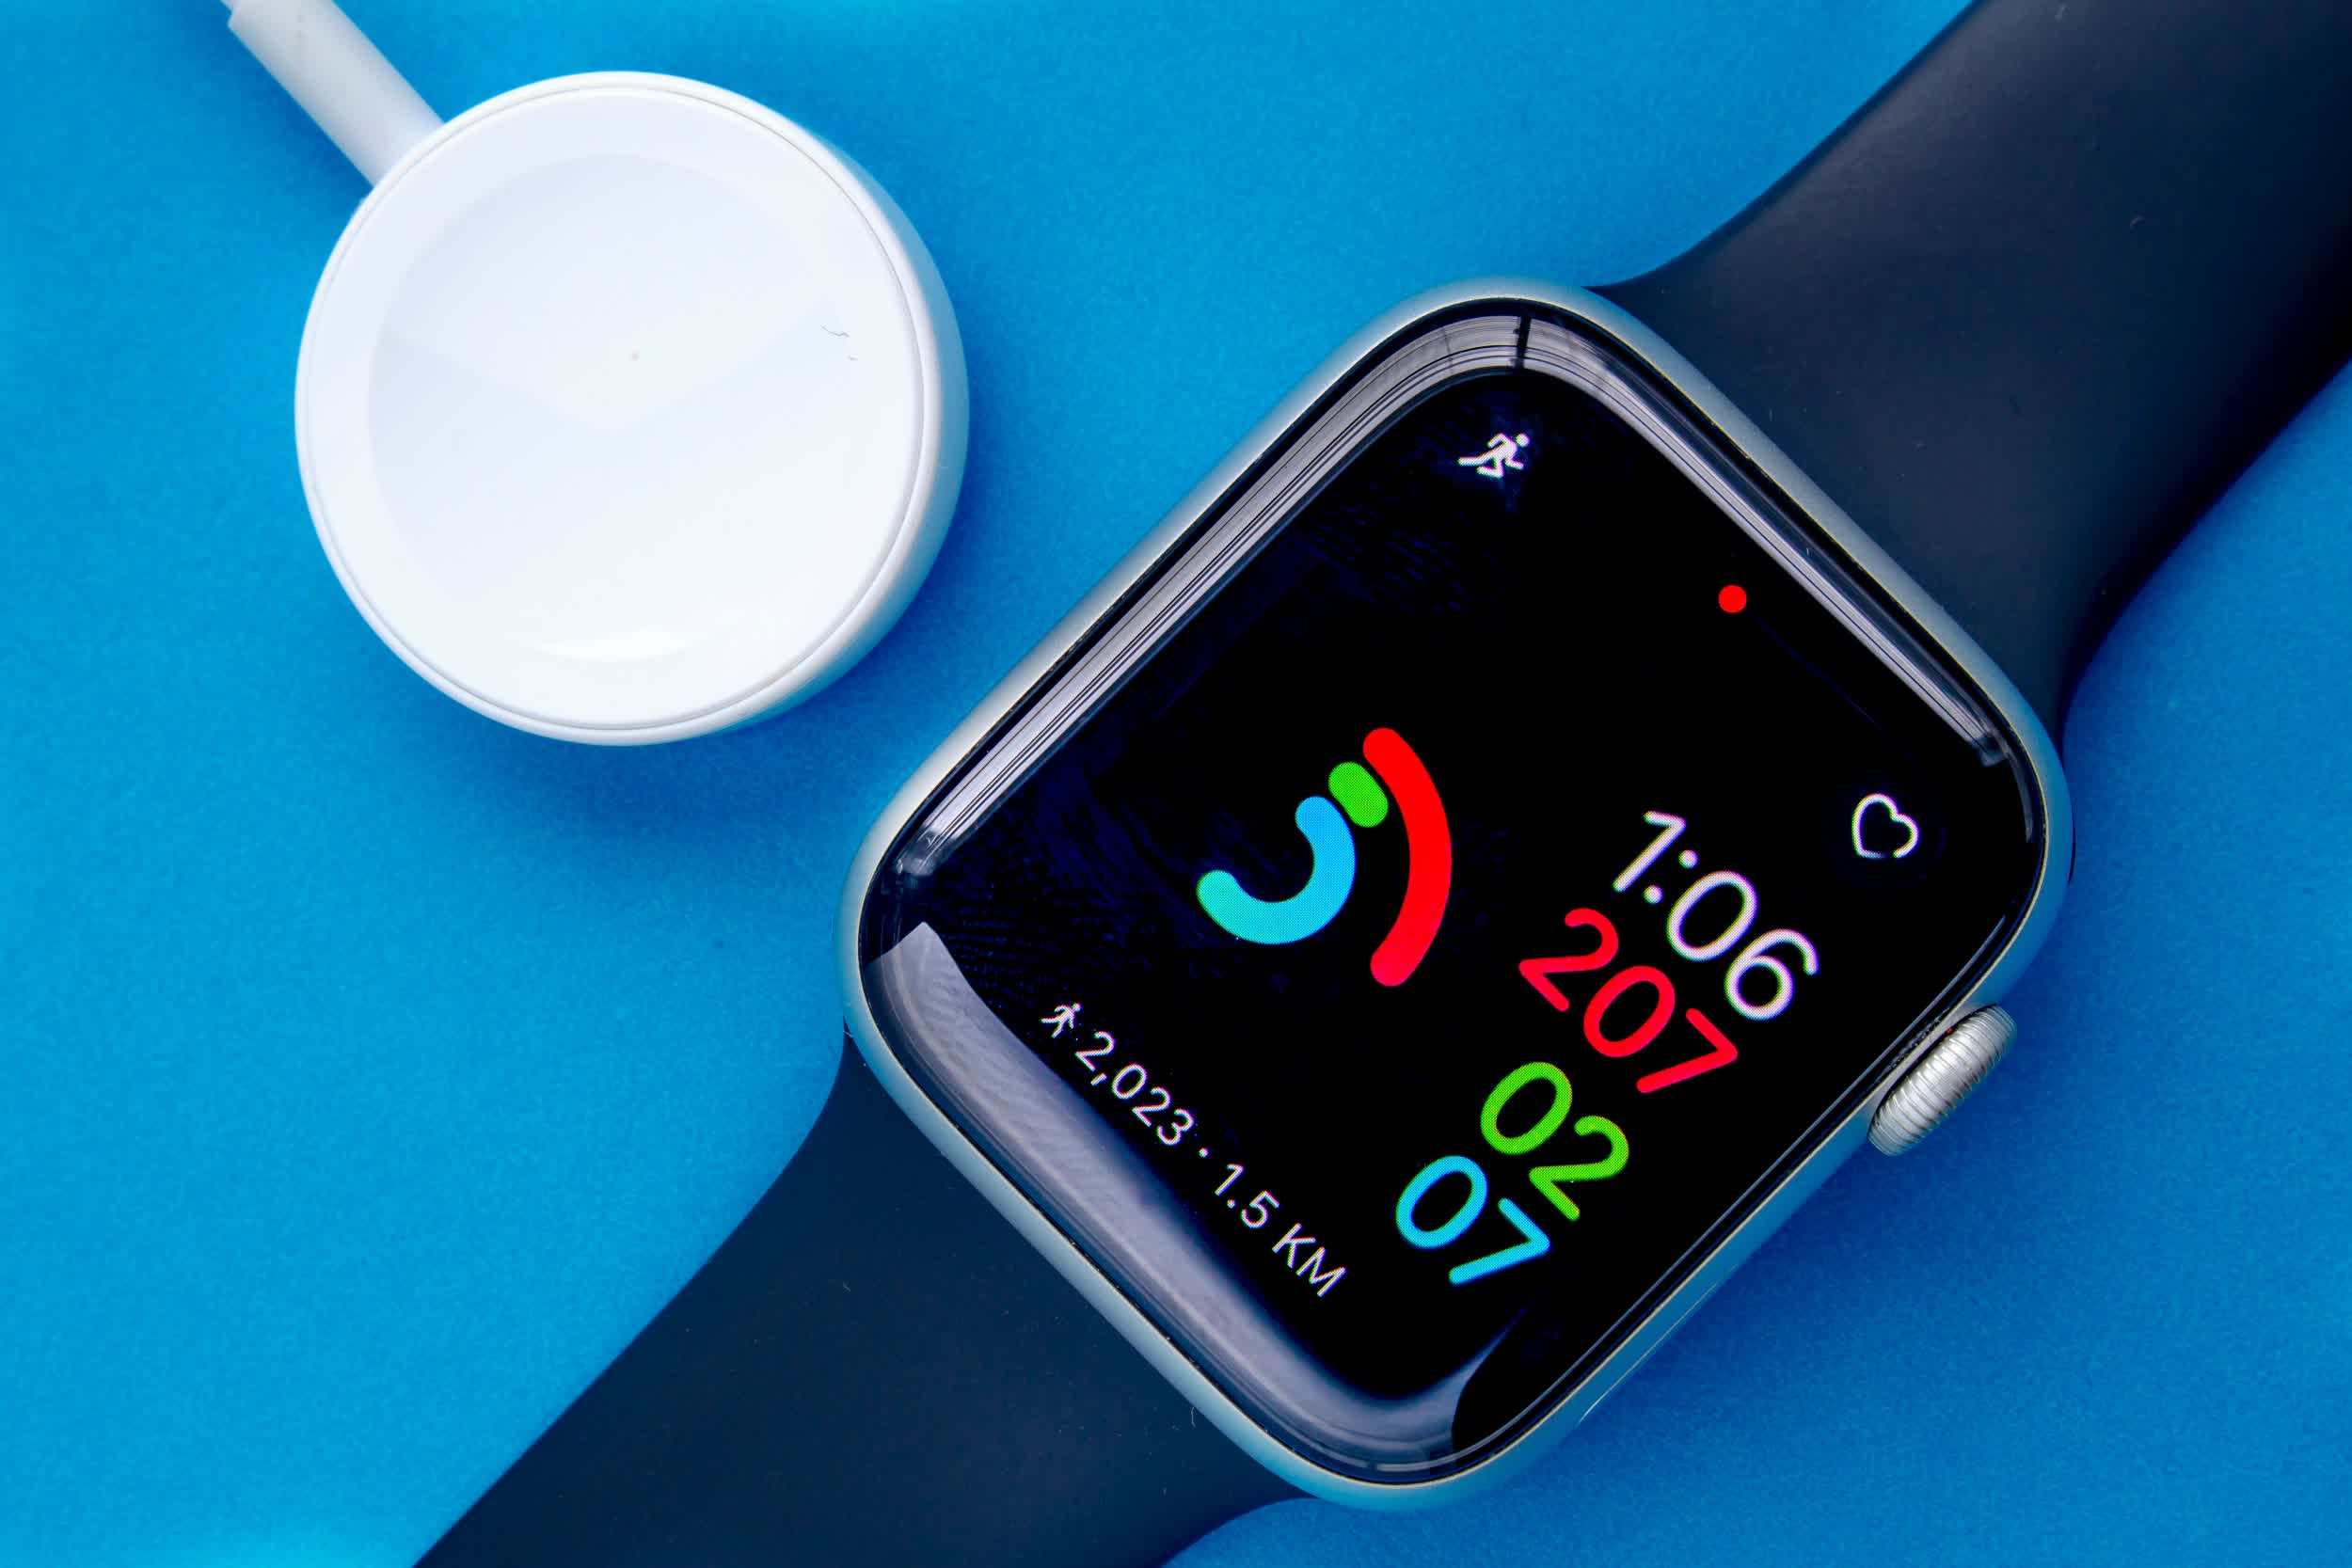 Future Apple Watch could measure blood glucose, pressure, and alcohol levels